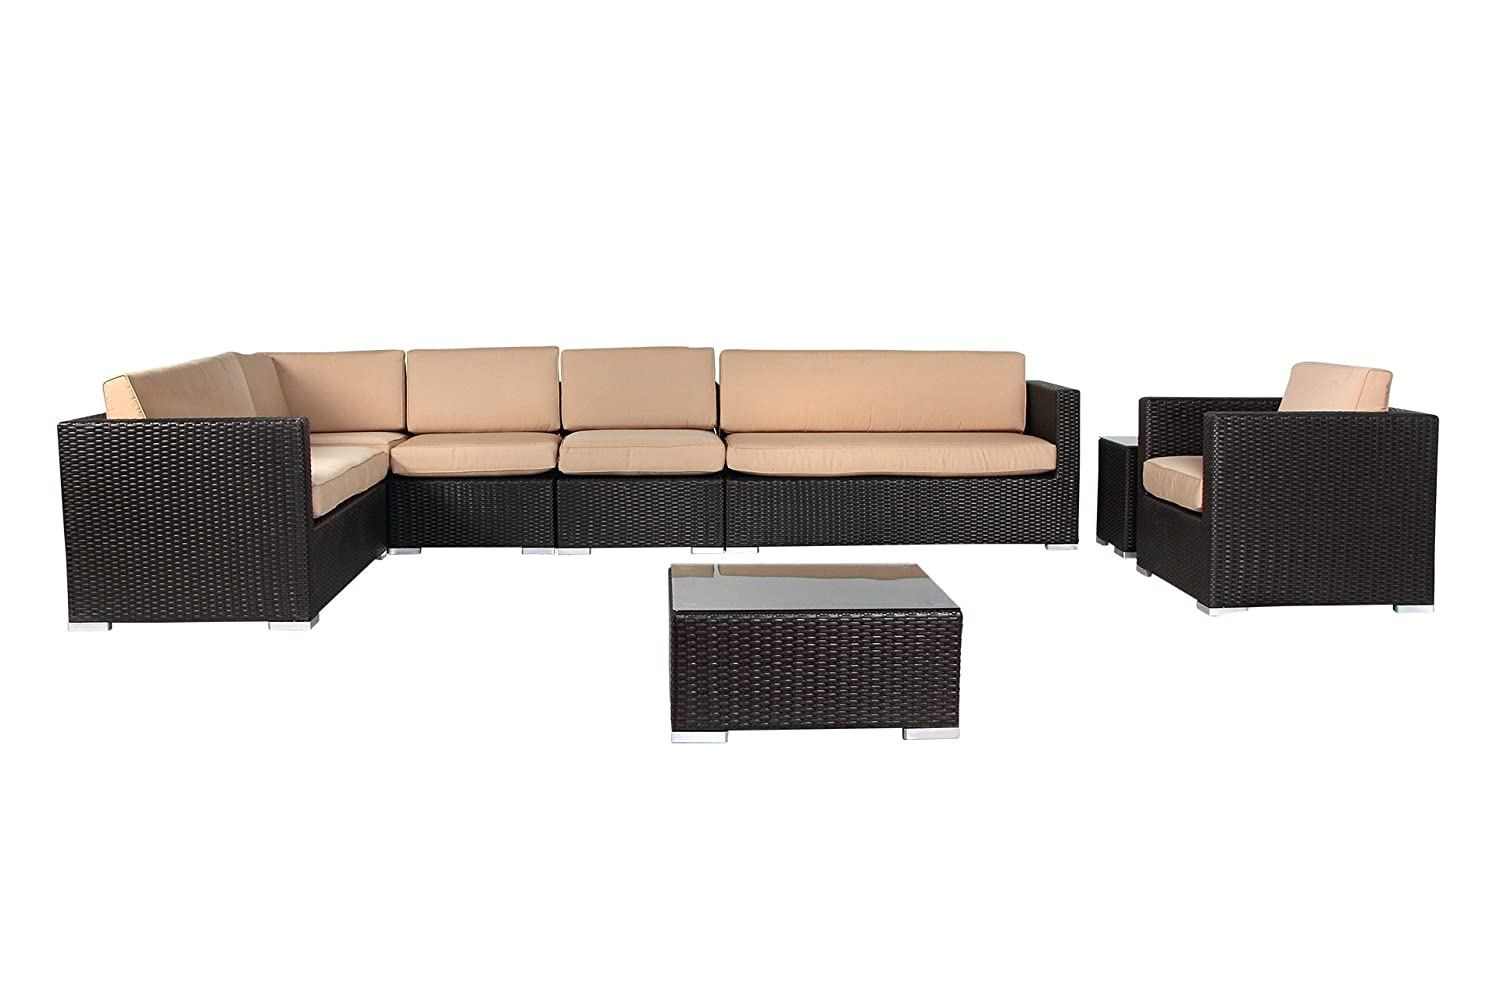 rattan gartenm bel lounge cala d or deluxe 10cm polster schwarz kaufen. Black Bedroom Furniture Sets. Home Design Ideas